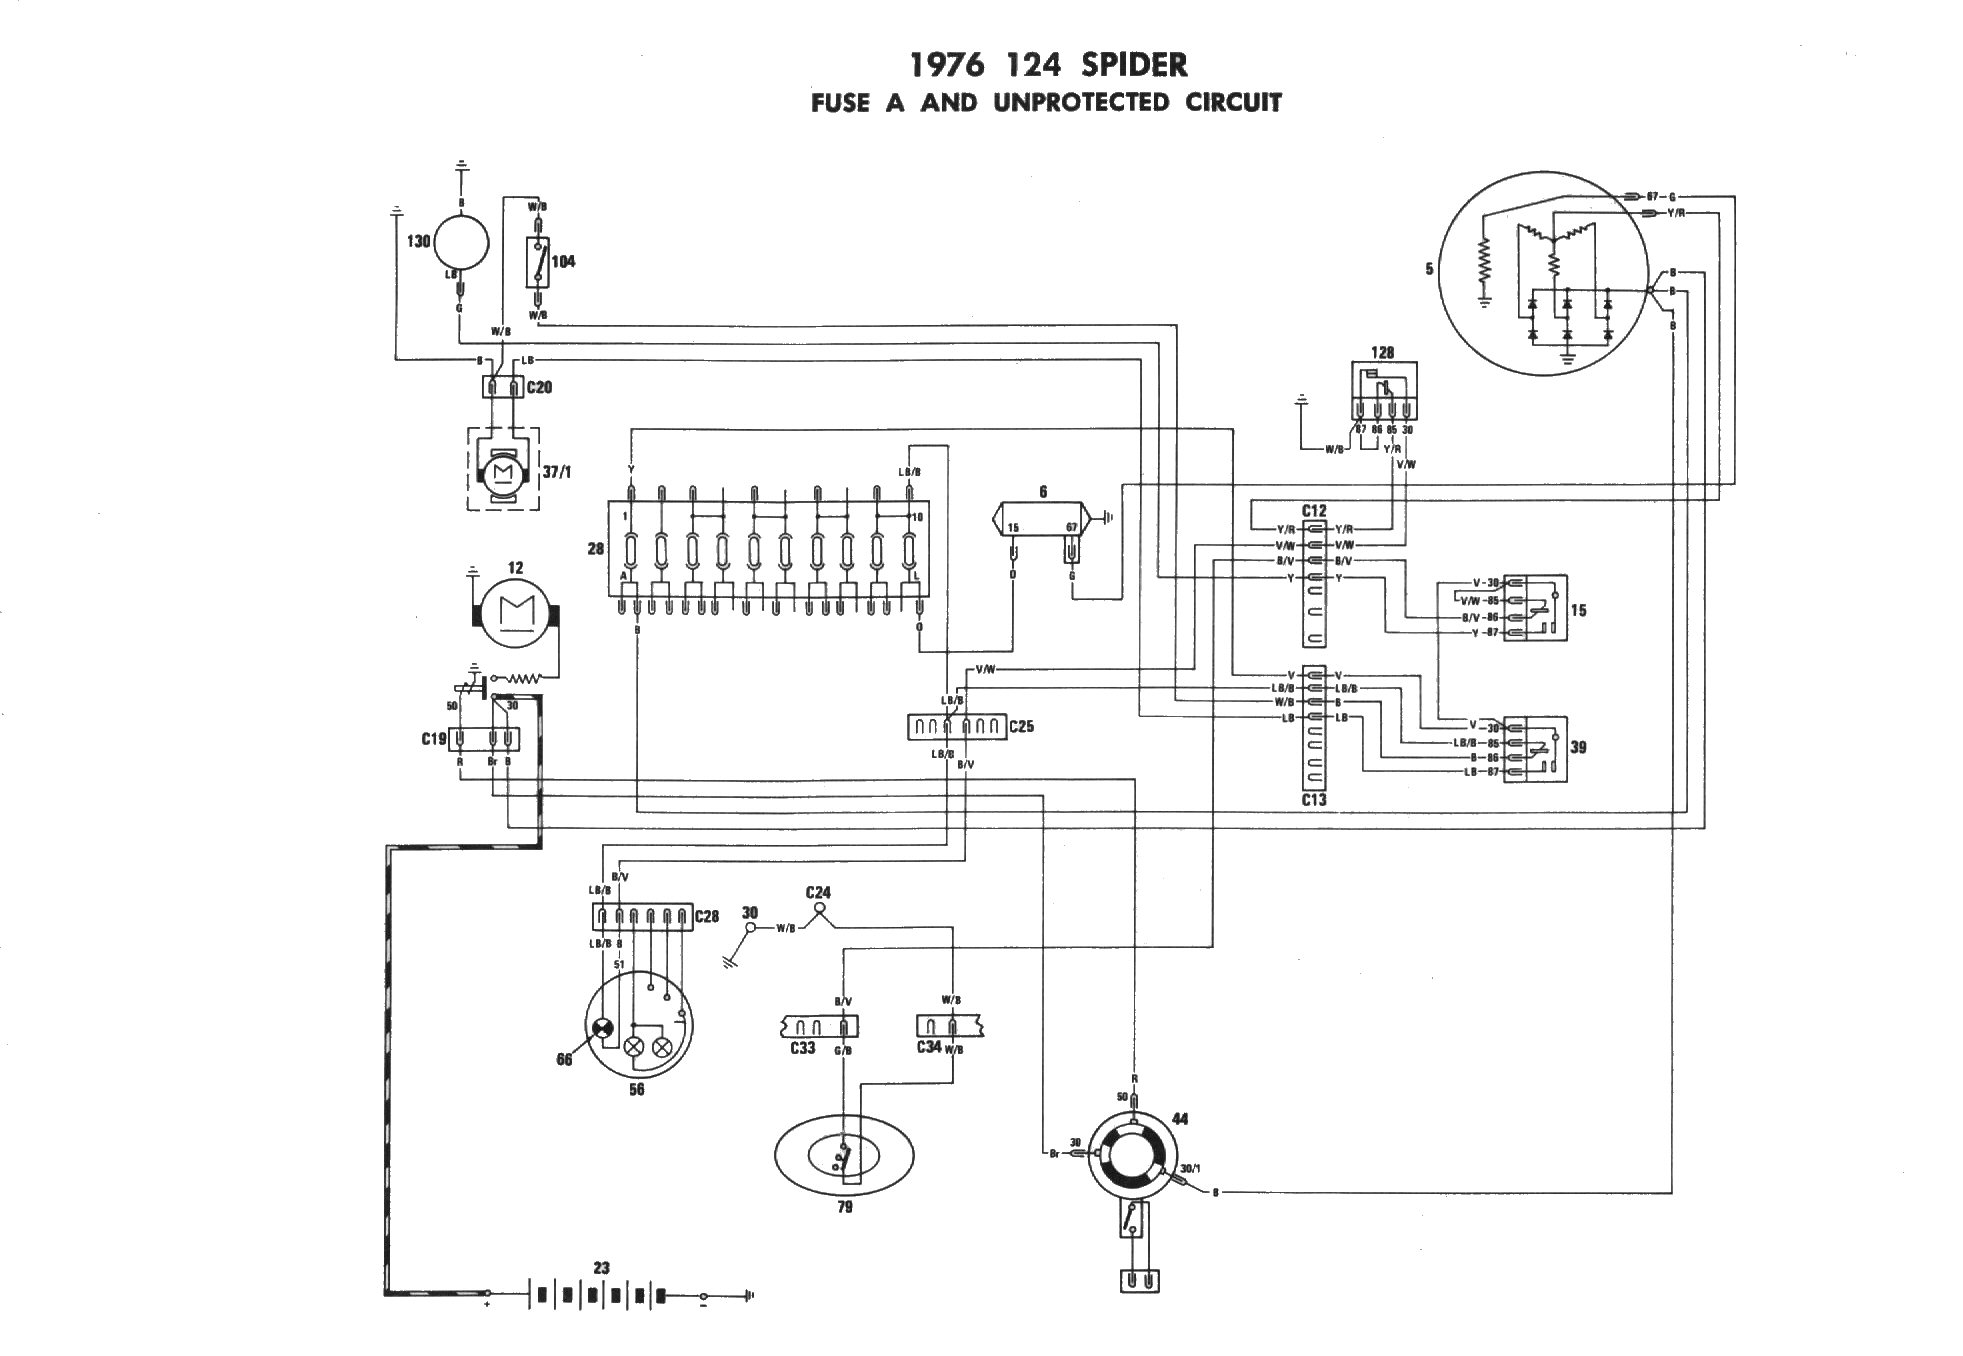 1977 Fiat 124 Spider Wiring Diagram, 1977, Free Engine